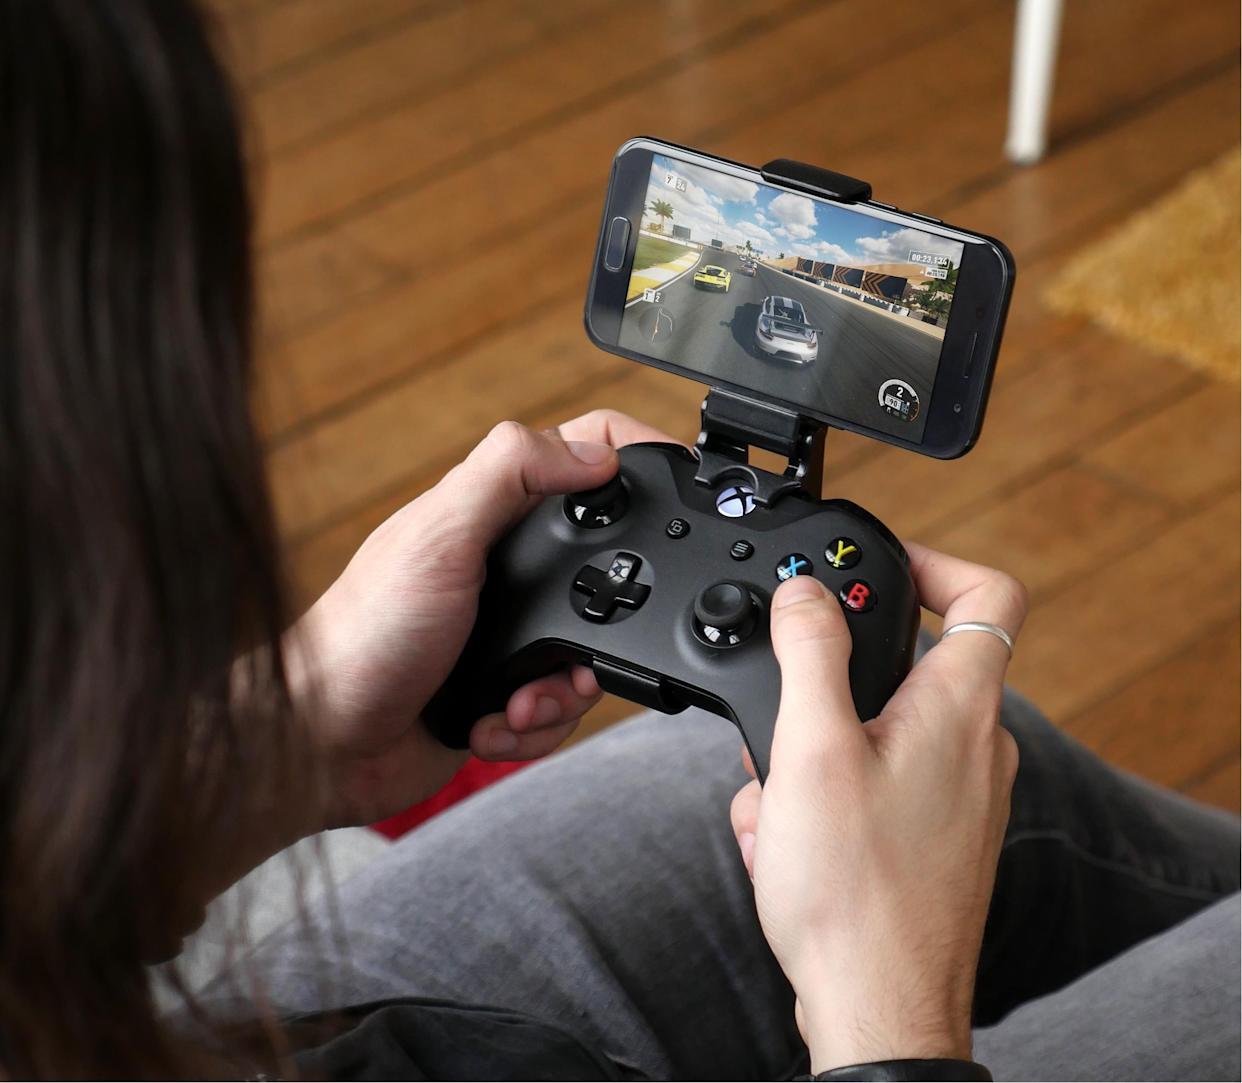 Cloud gaming will let you play high-end video games on nearly any device you own.